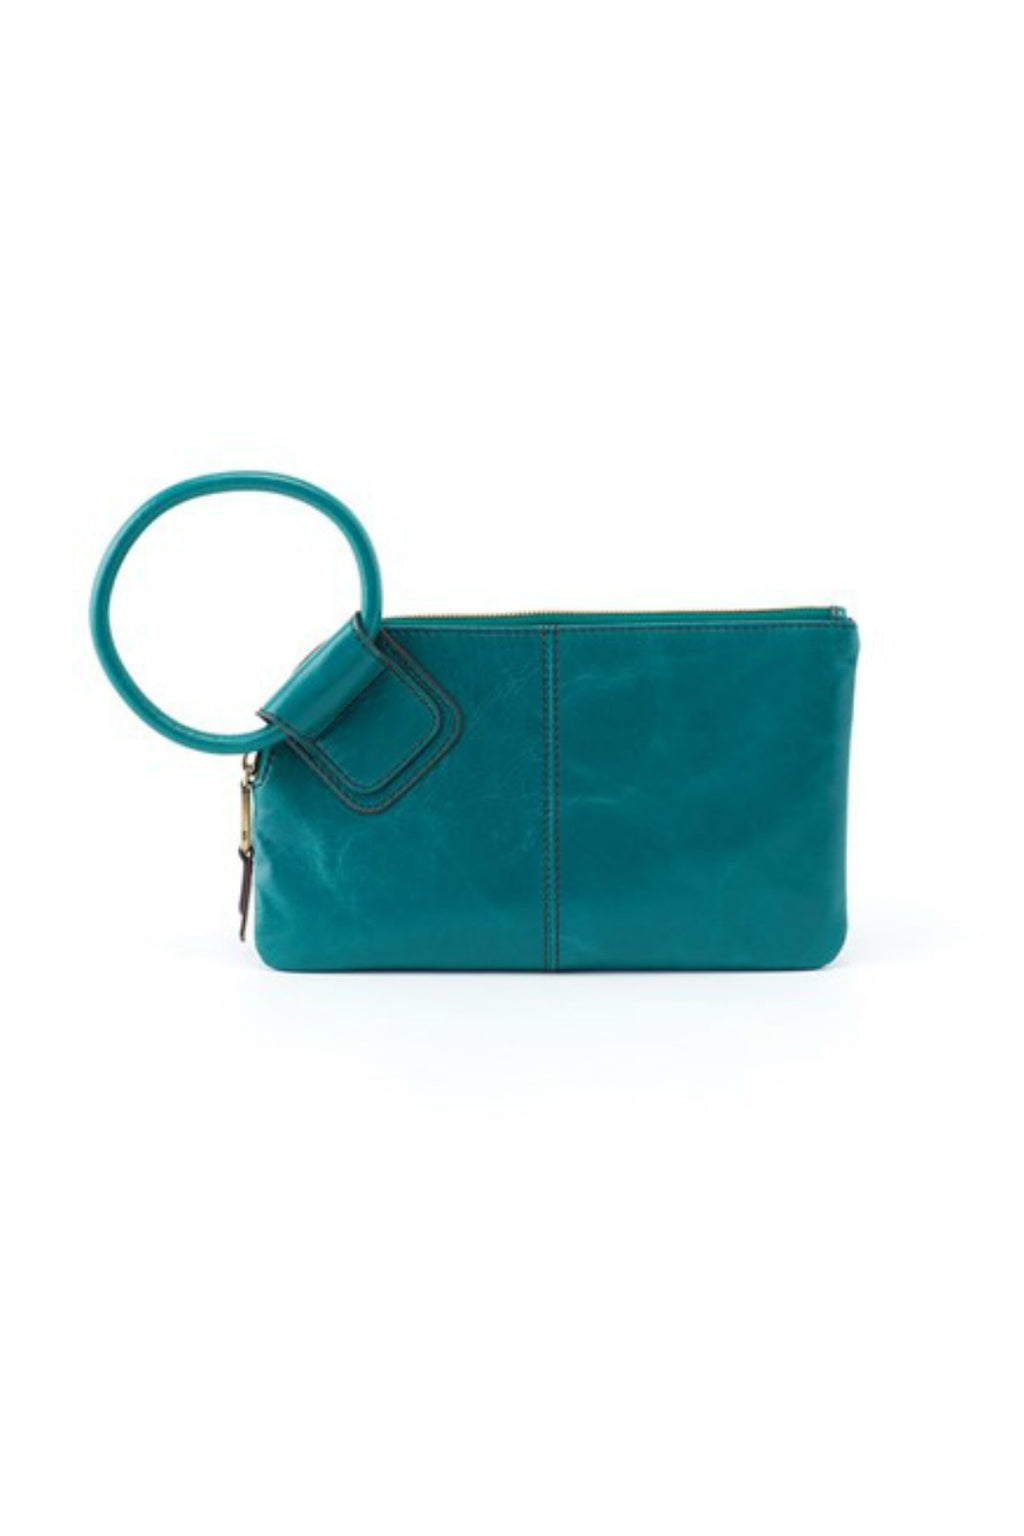 Hobo Sable Wristlet - Bluegrass